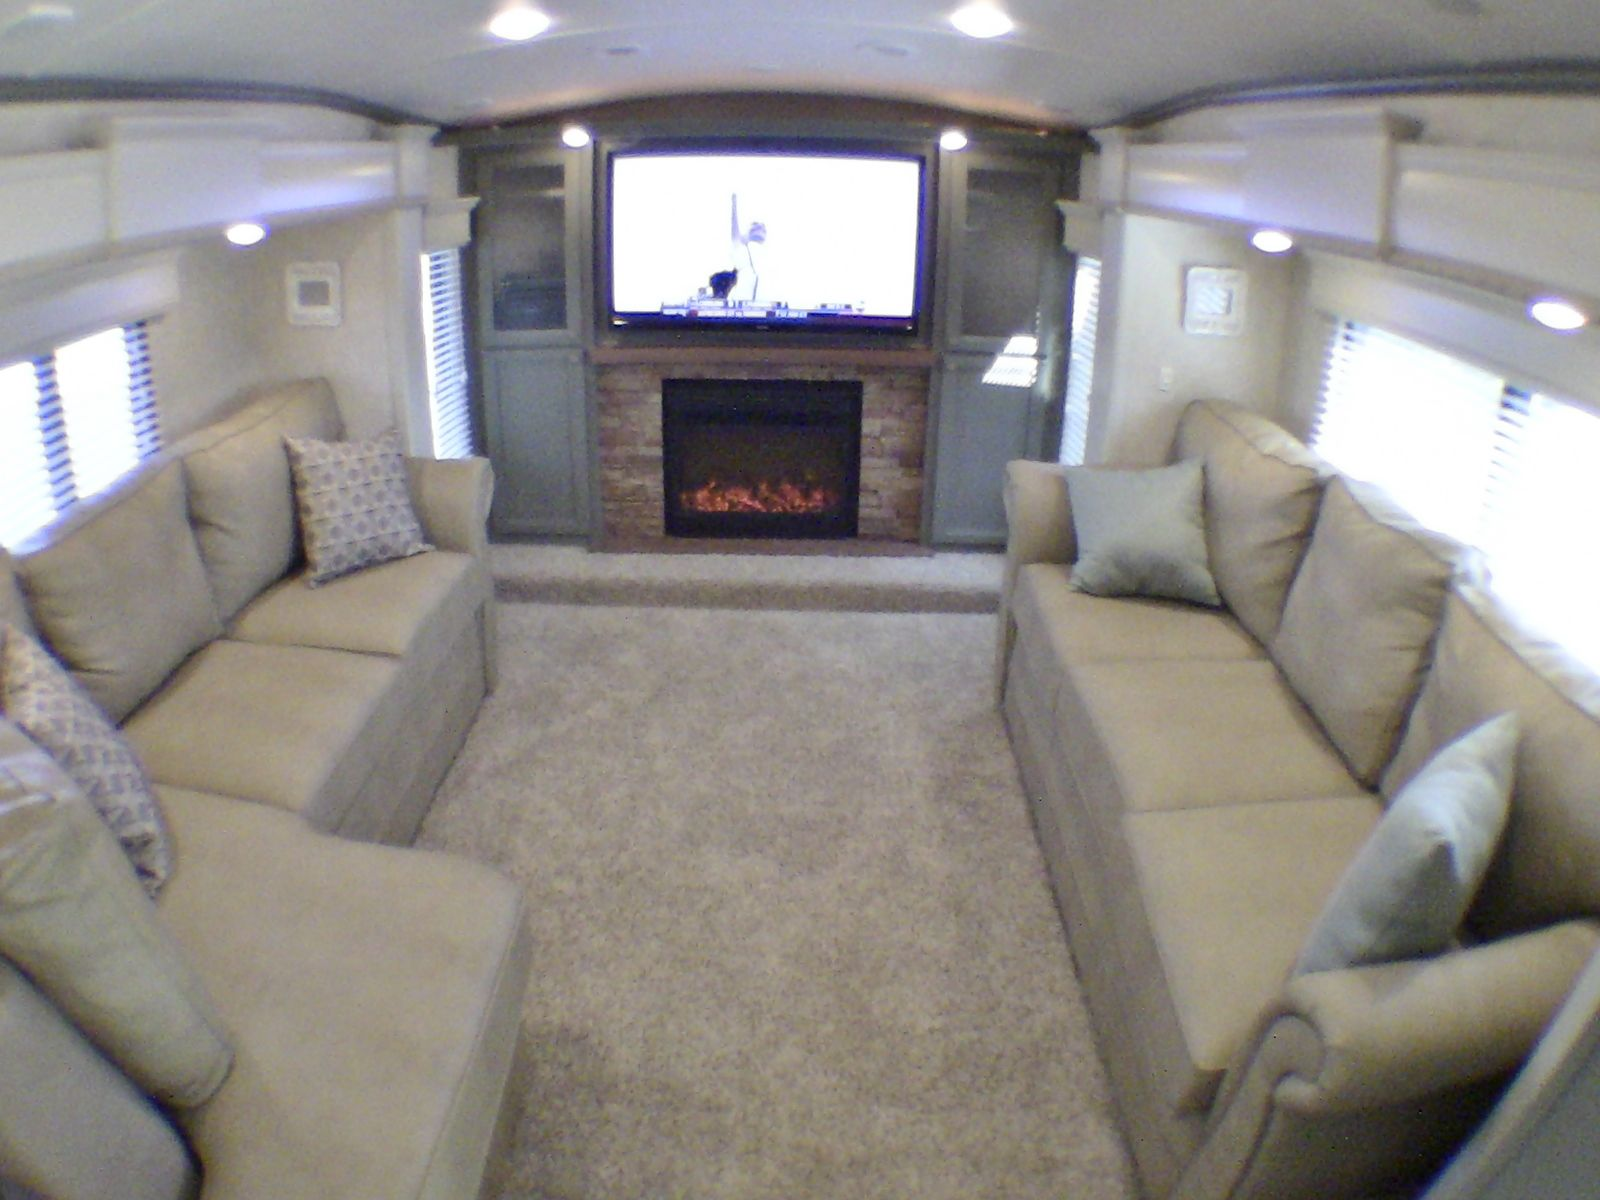 2014 Drv Tradition 390 Luxury Front Living Room 5th Wheel 5